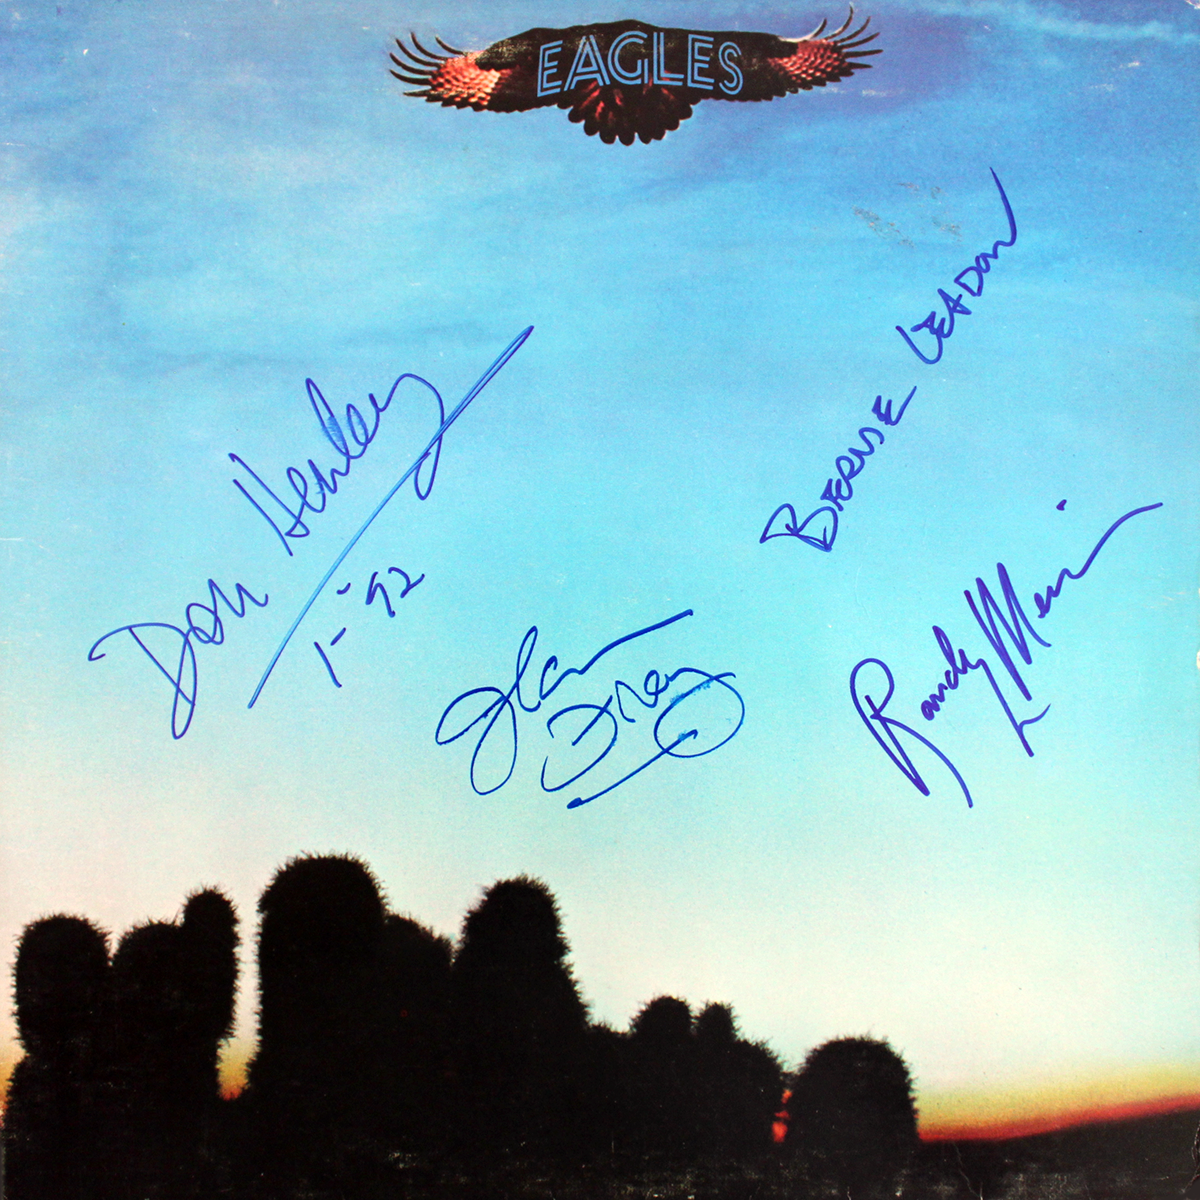 Eagles LP #2